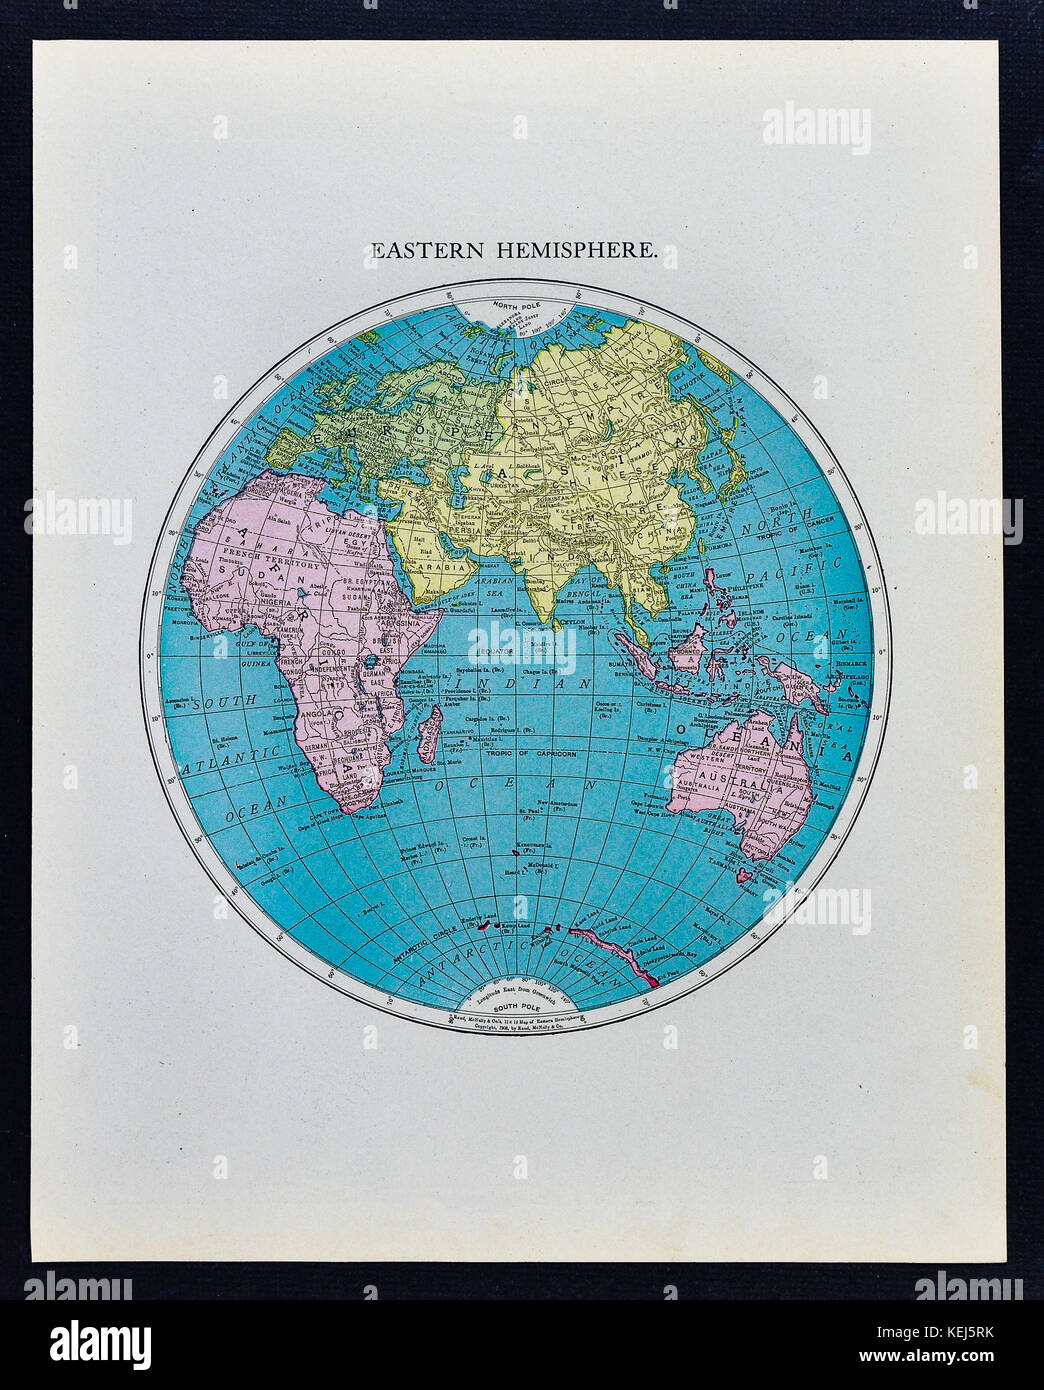 mcnally antique world eastern hemisphere map 1911 showing africa europe asia and australia stock image